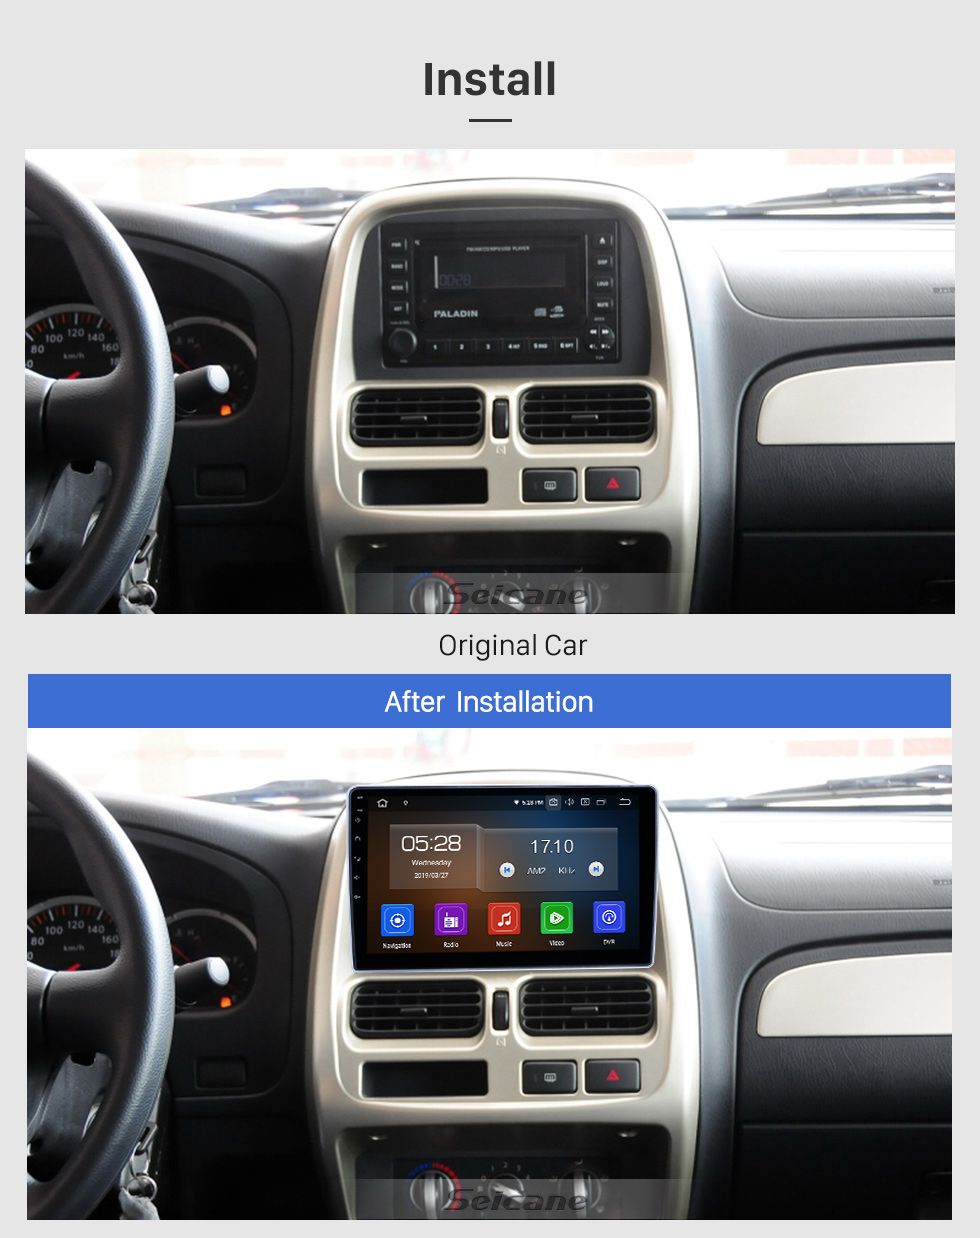 Seicane 10.1 inch 2004-2013 Nissan Paladin Android 9.0 GPS Navigation Radio Bluetooth HD Touchscreen Carplay support Mirror Link